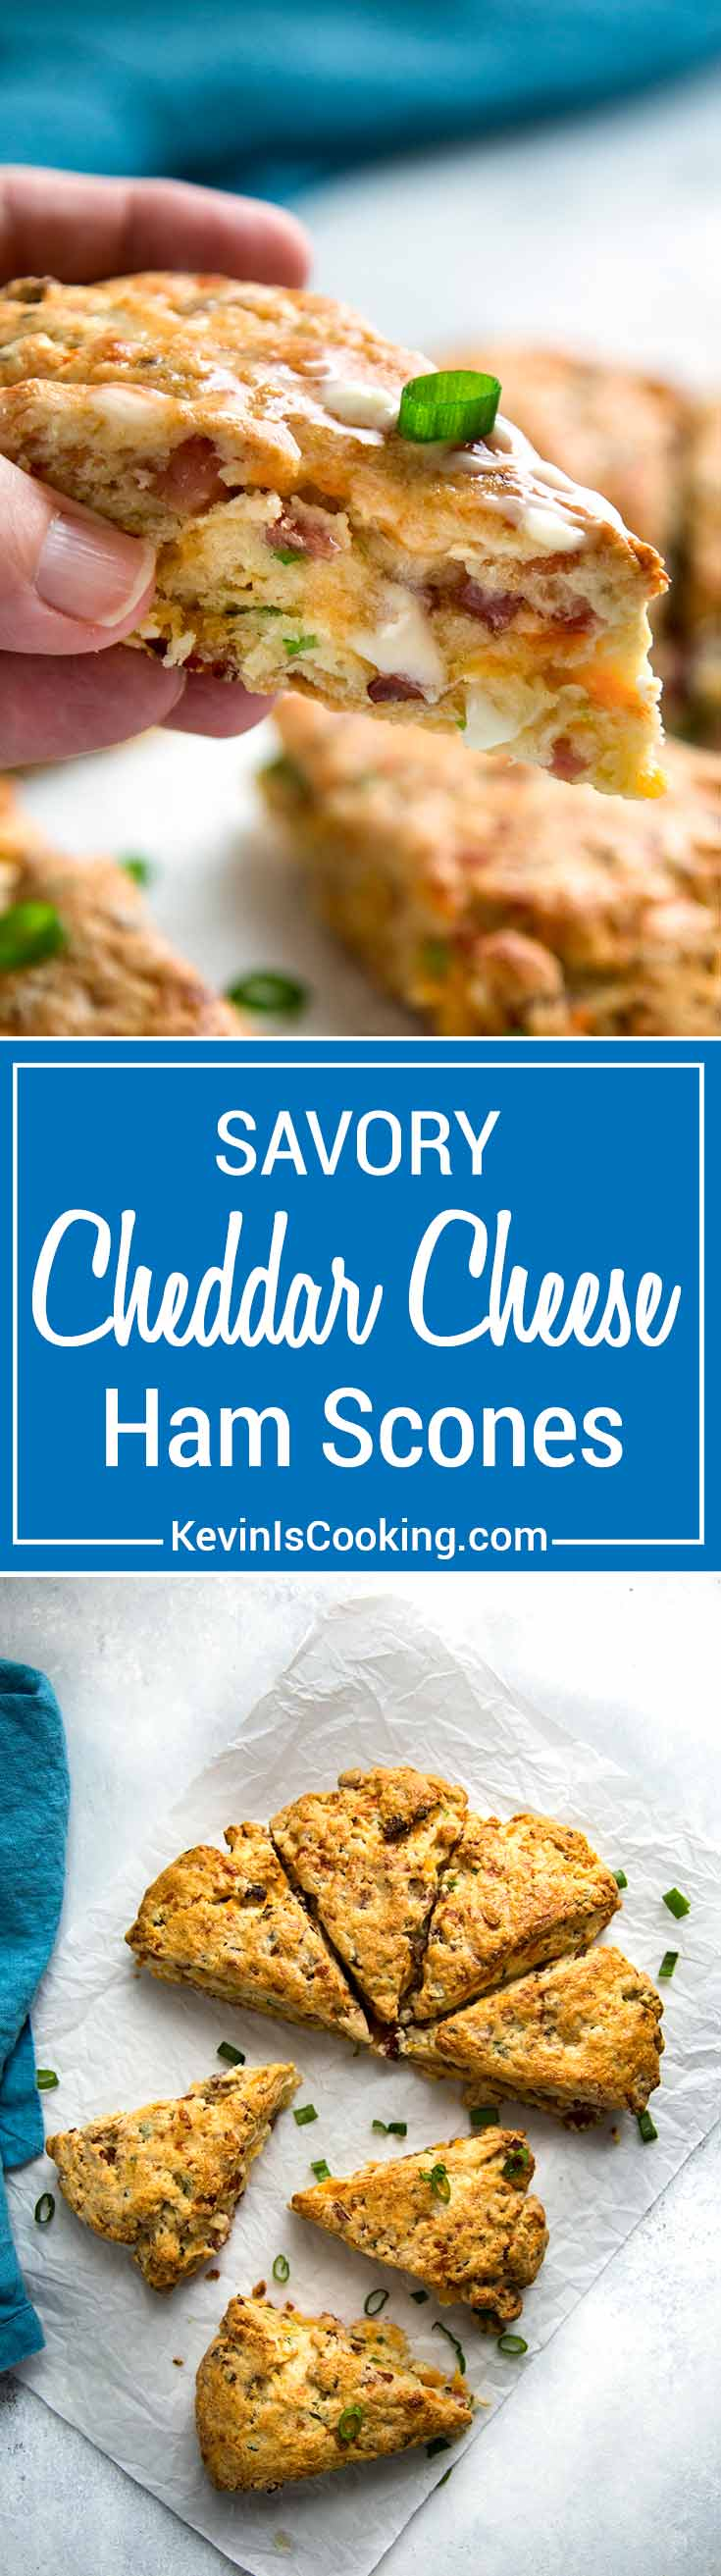 Warm, tender and flakey, these Ham and Cheese Scones make the most of any leftover holiday ham made with cheddar cheese and green onions for one savory scone!